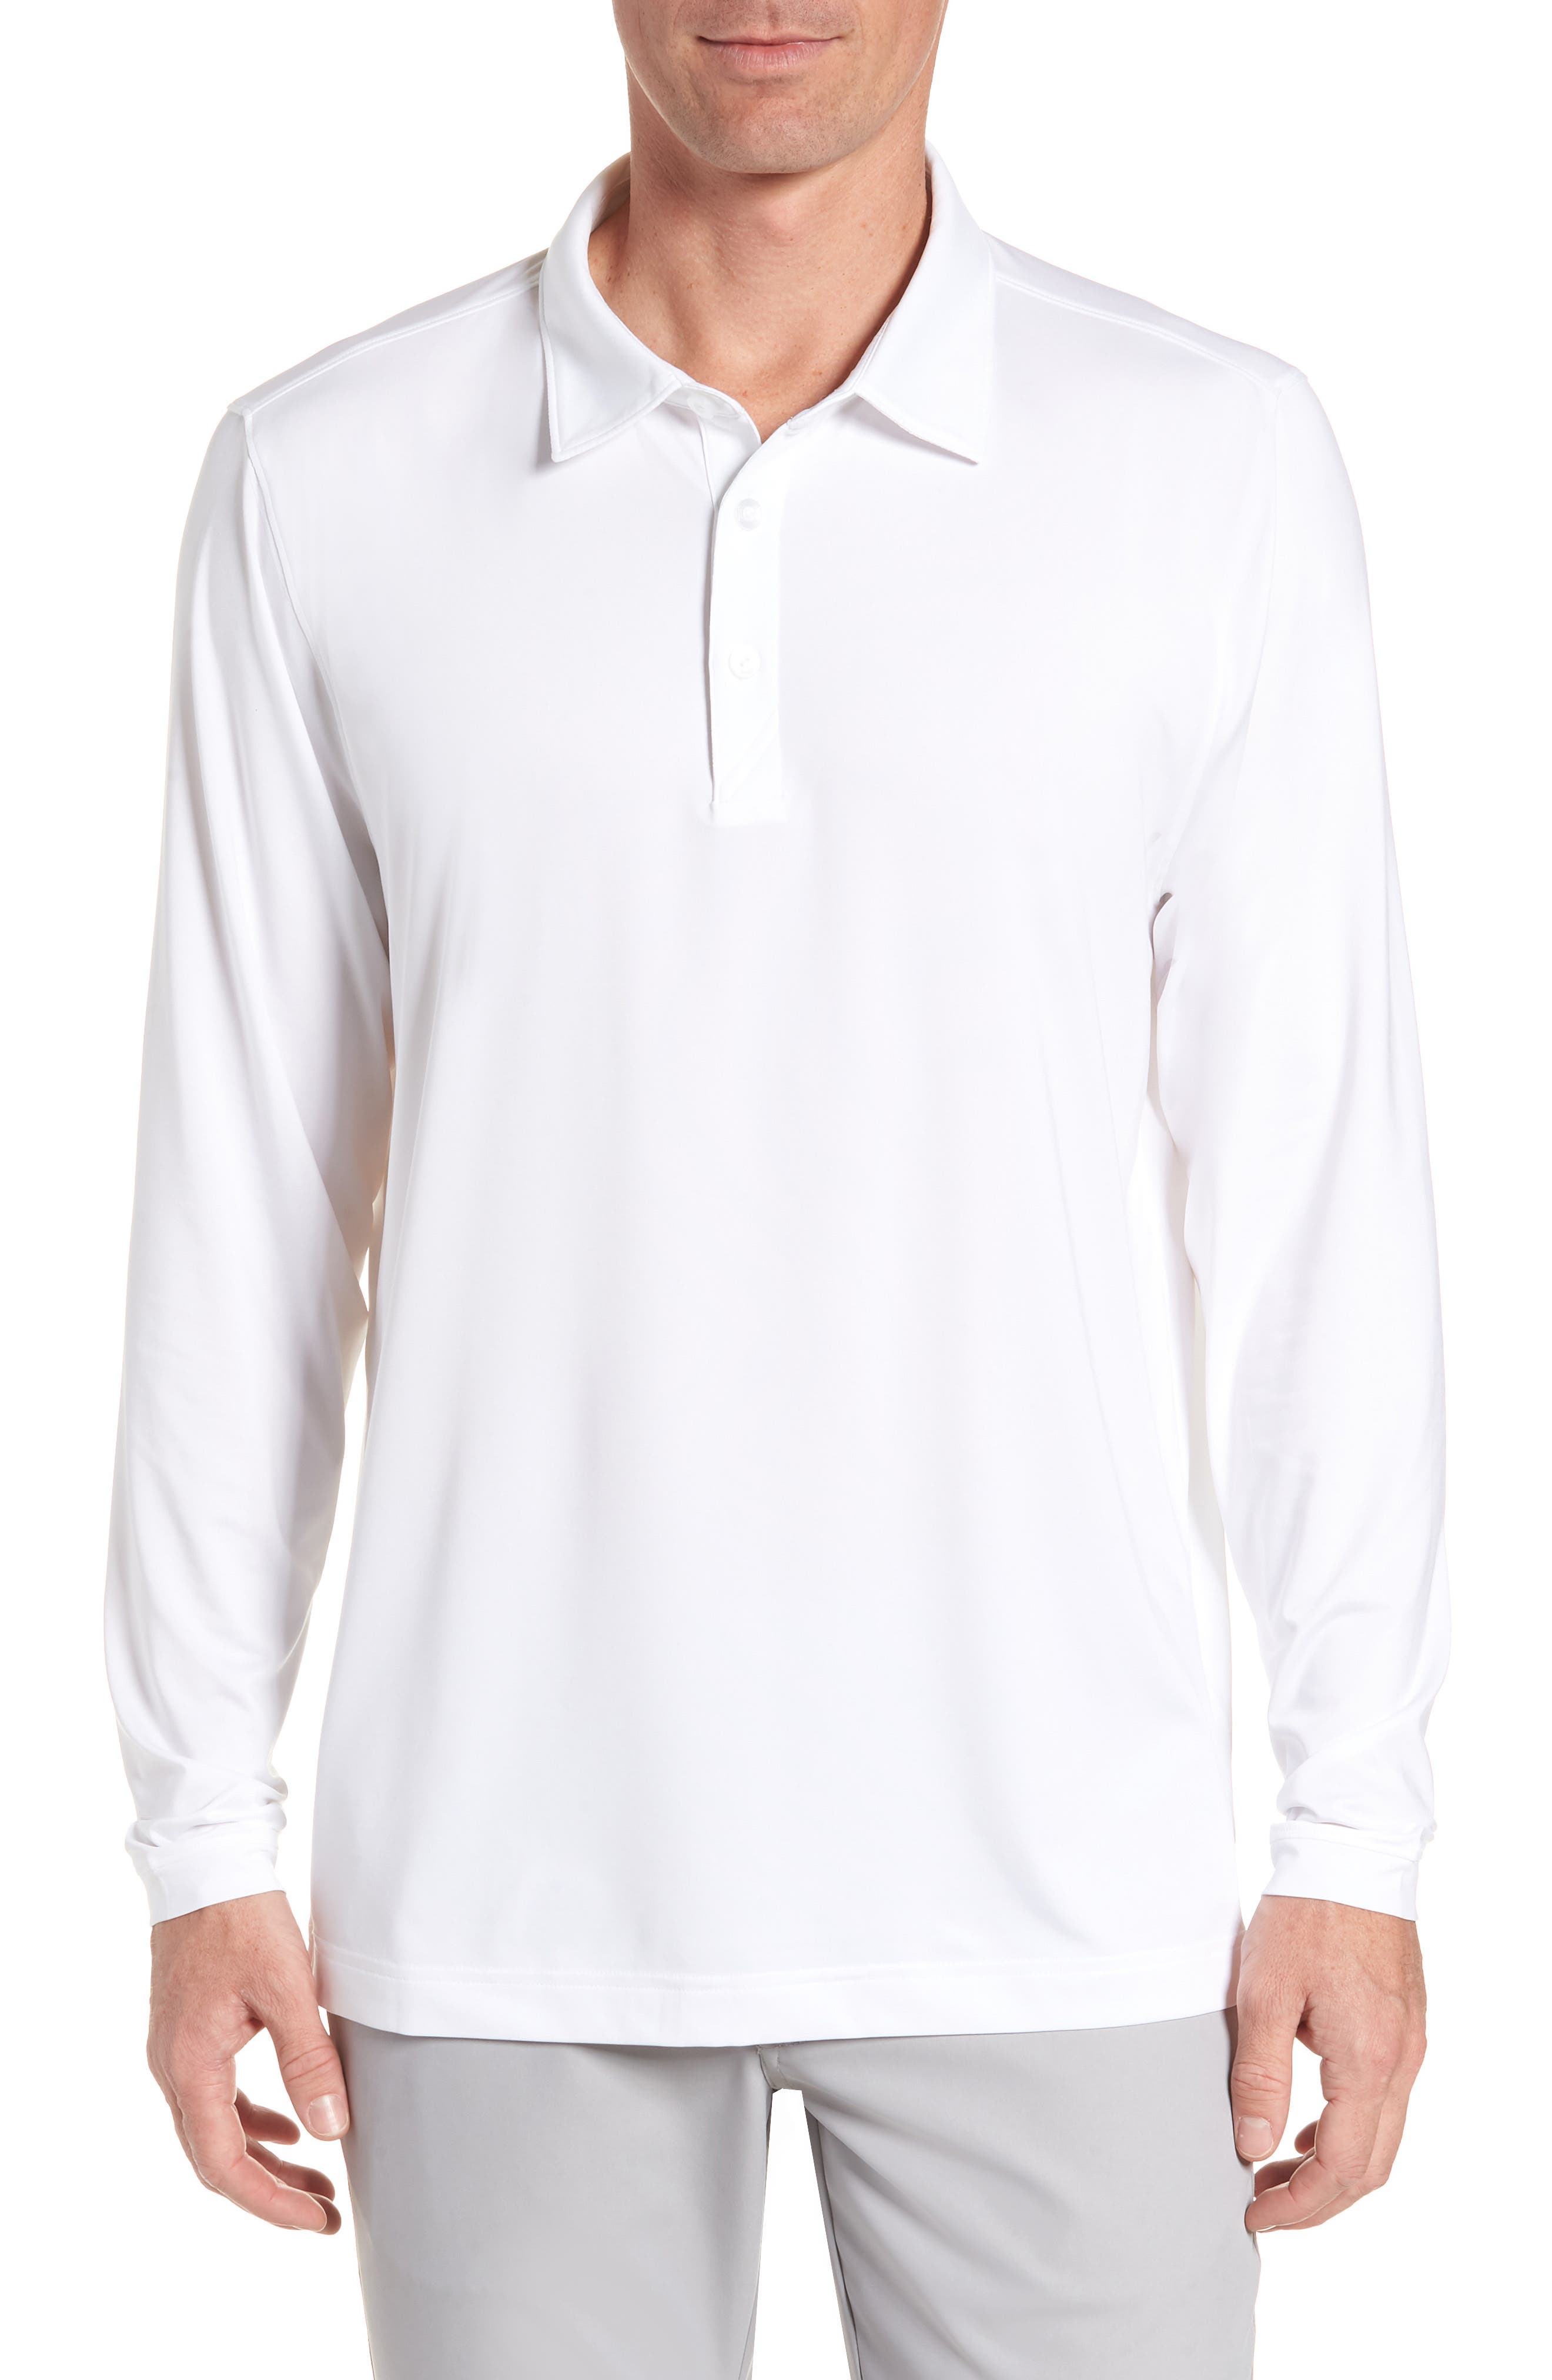 CUTTER & BUCK,                             Belmont Long Sleeve Solid Polo,                             Main thumbnail 1, color,                             100